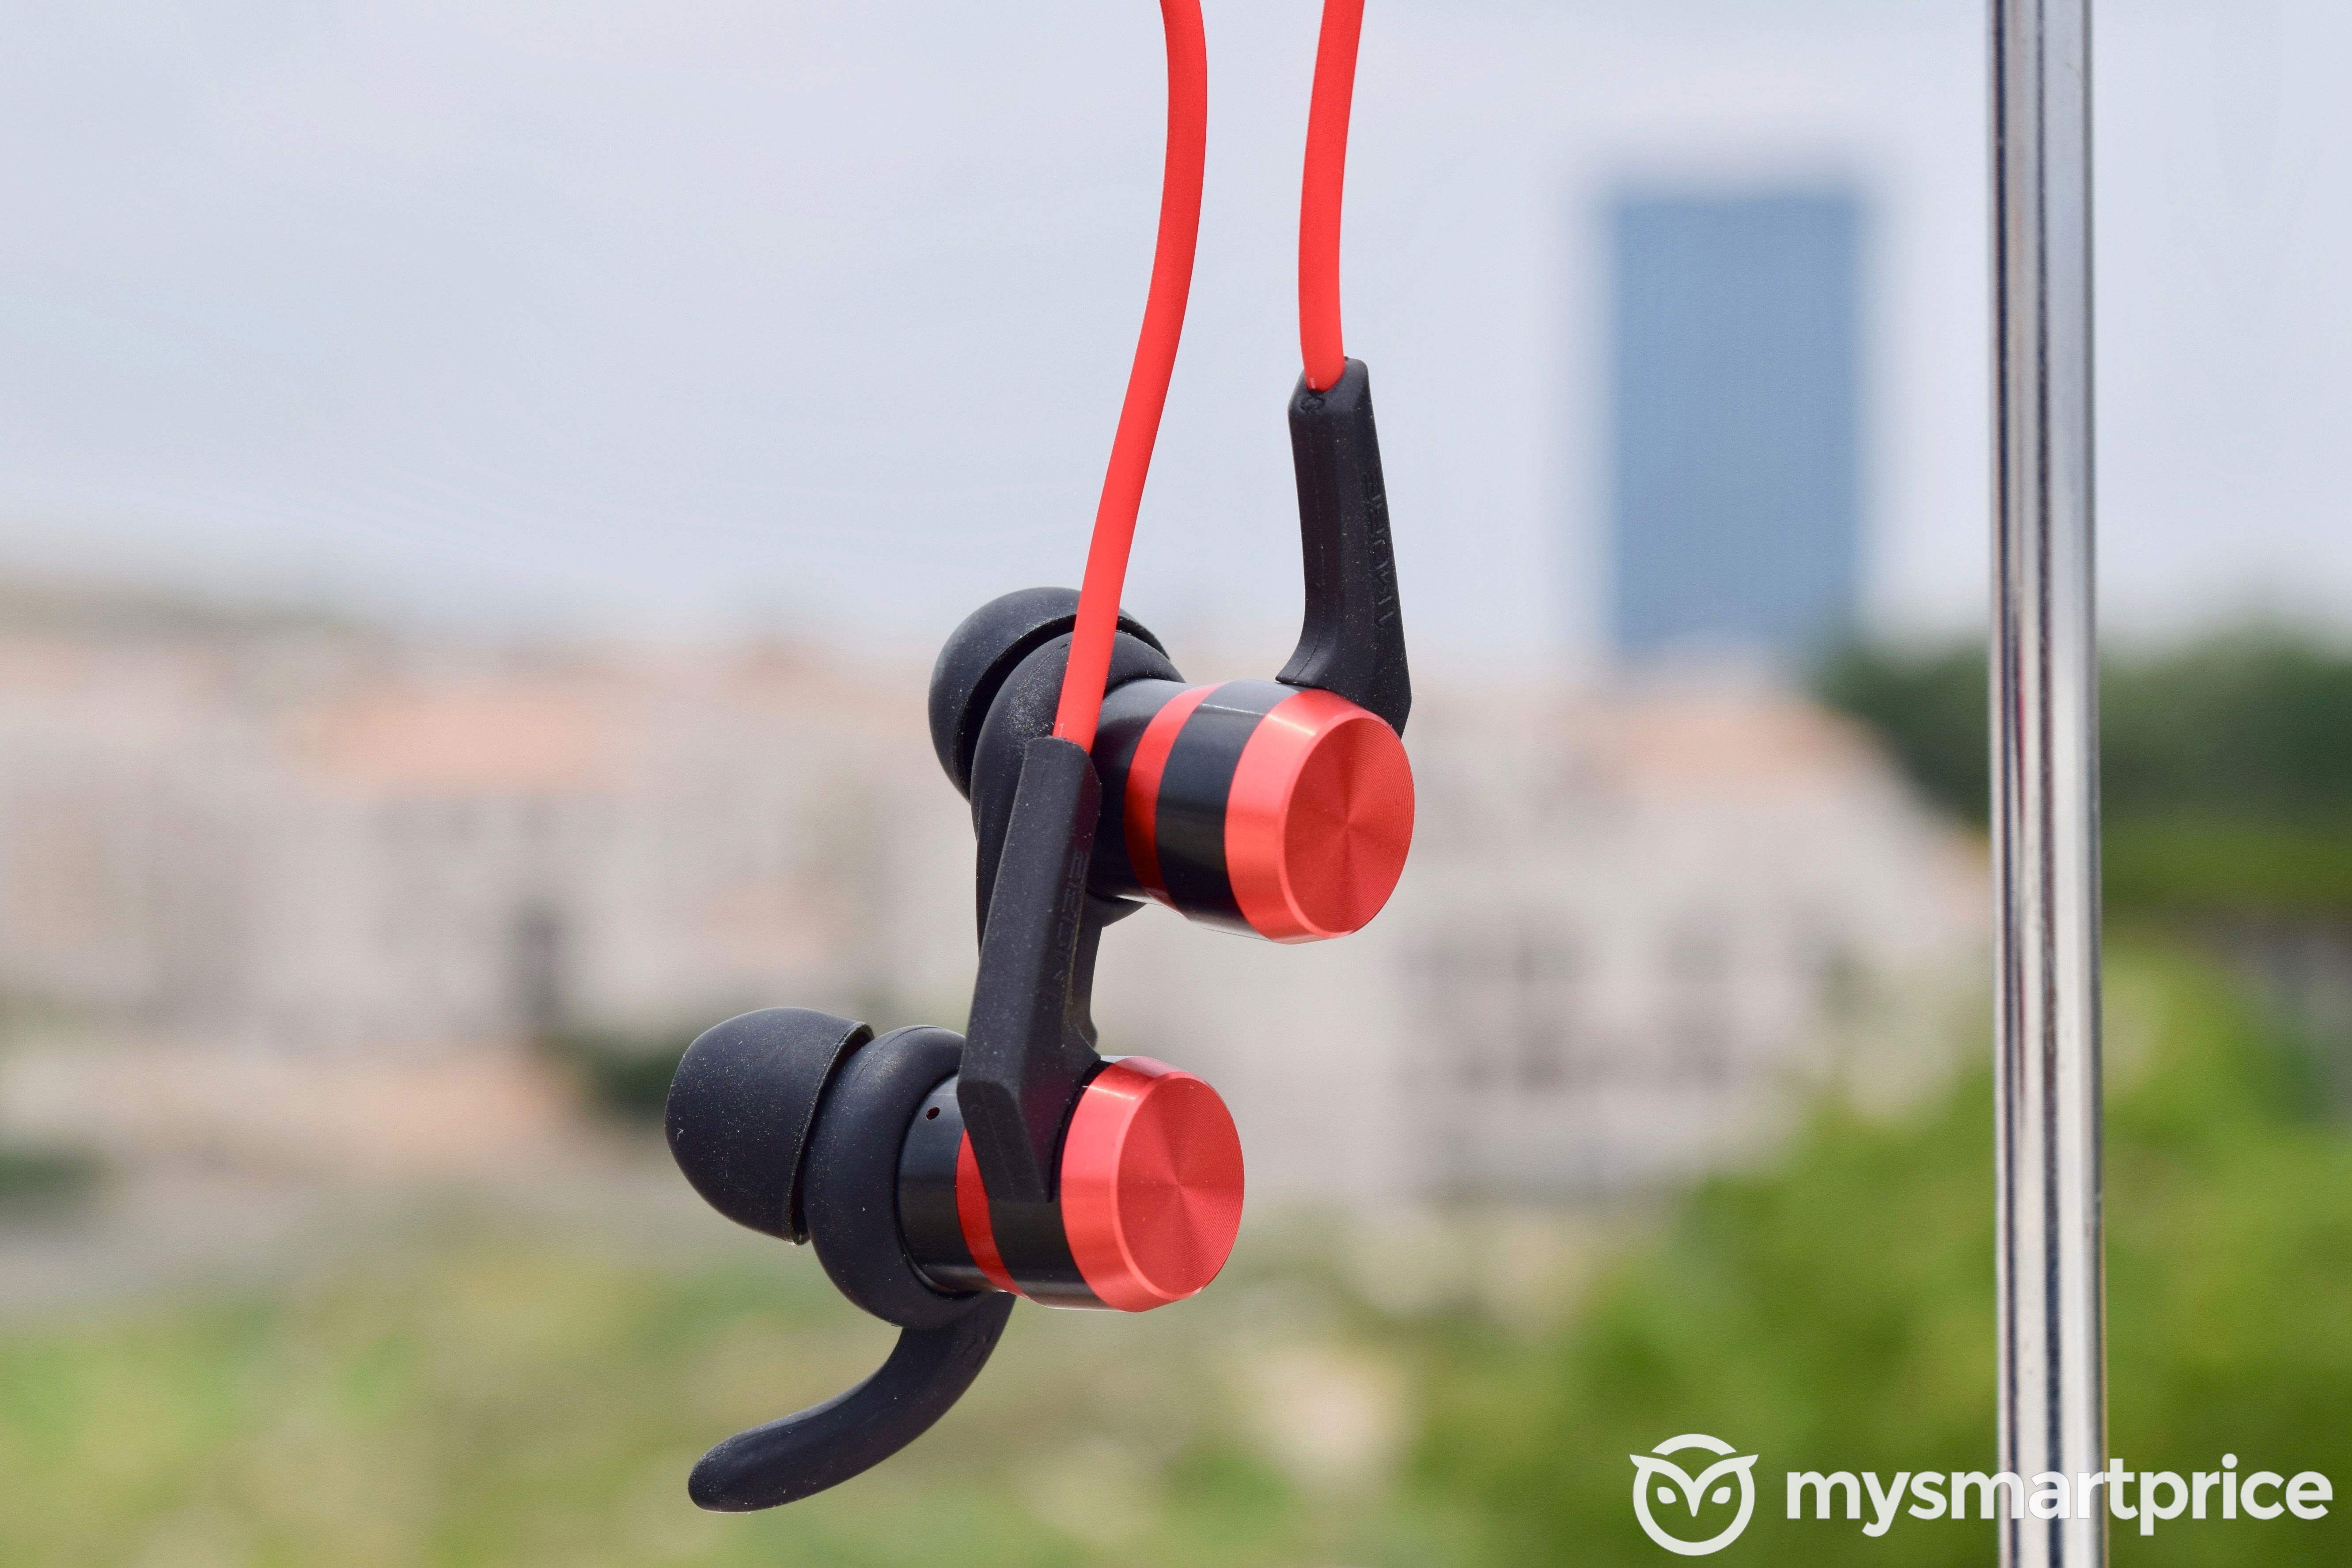 1More iBFree Sport In-Ear Bluetooth Earphones